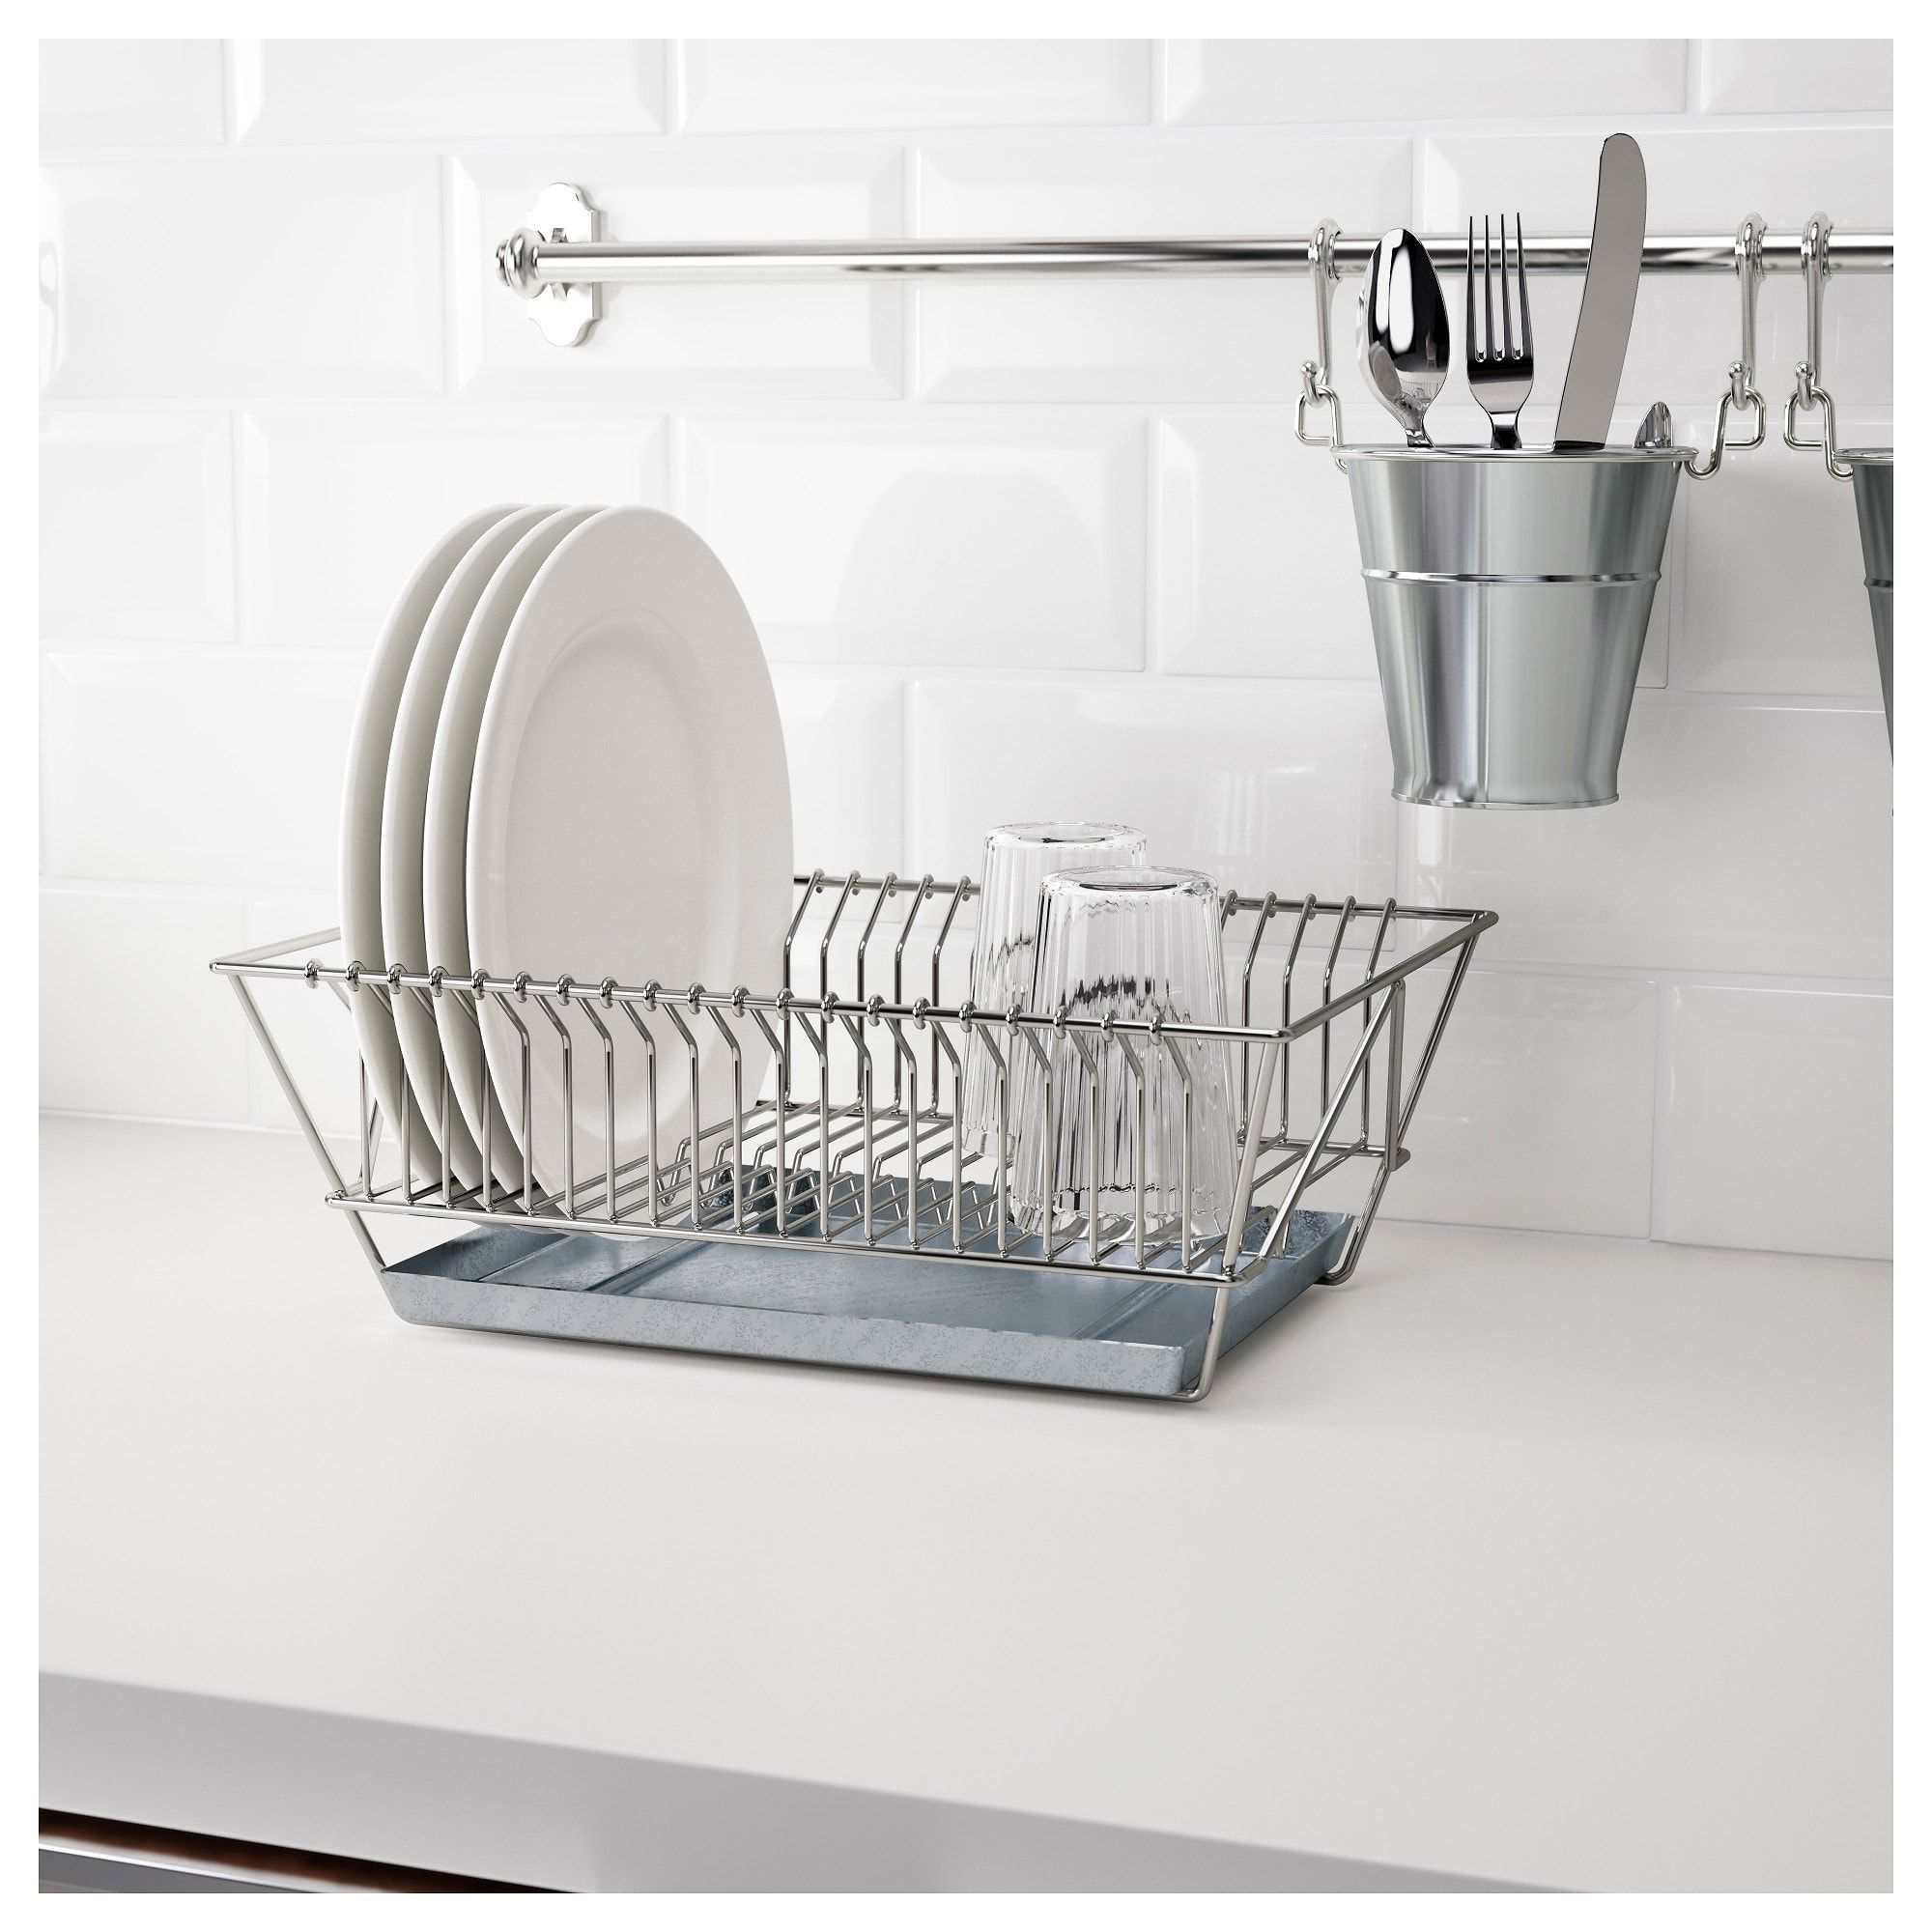 Ikea Fintorp Nickel Plated Dish Drainer Products In 2019 Dish